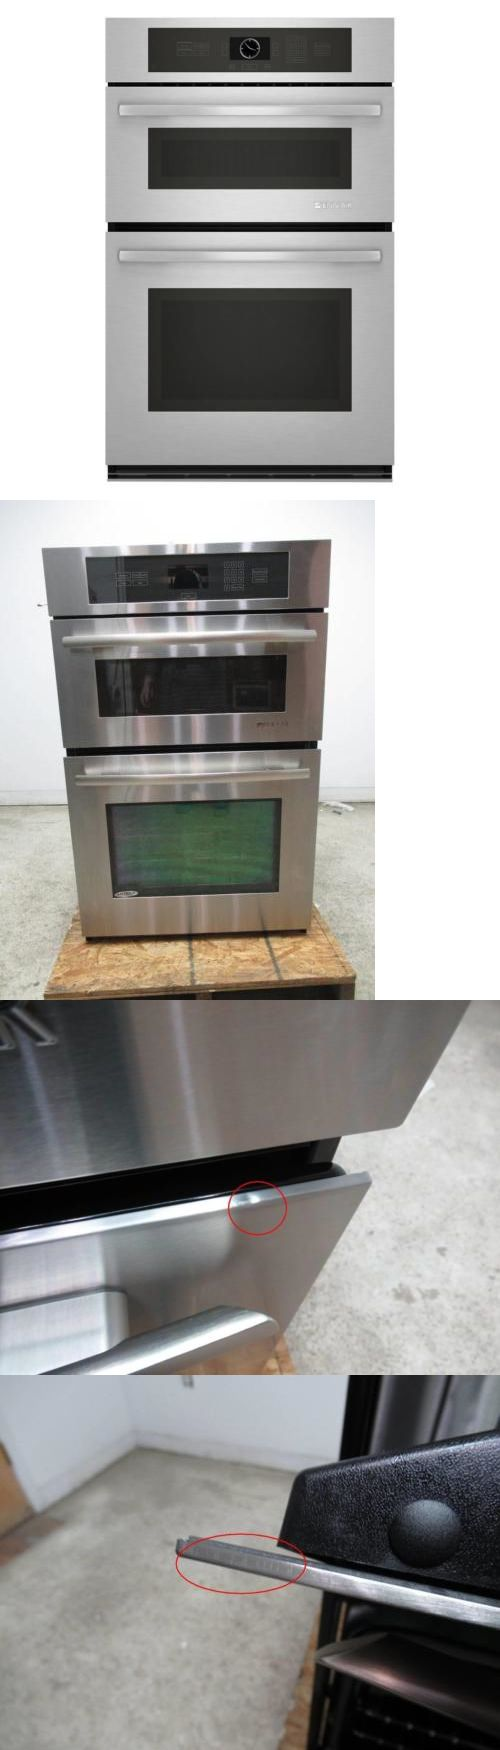 Wall Ovens 71318 Jenn Air 27 Stainless Combination Microwave Oven W Convection Jmw2427ws It Now Only 2099 On Ebay